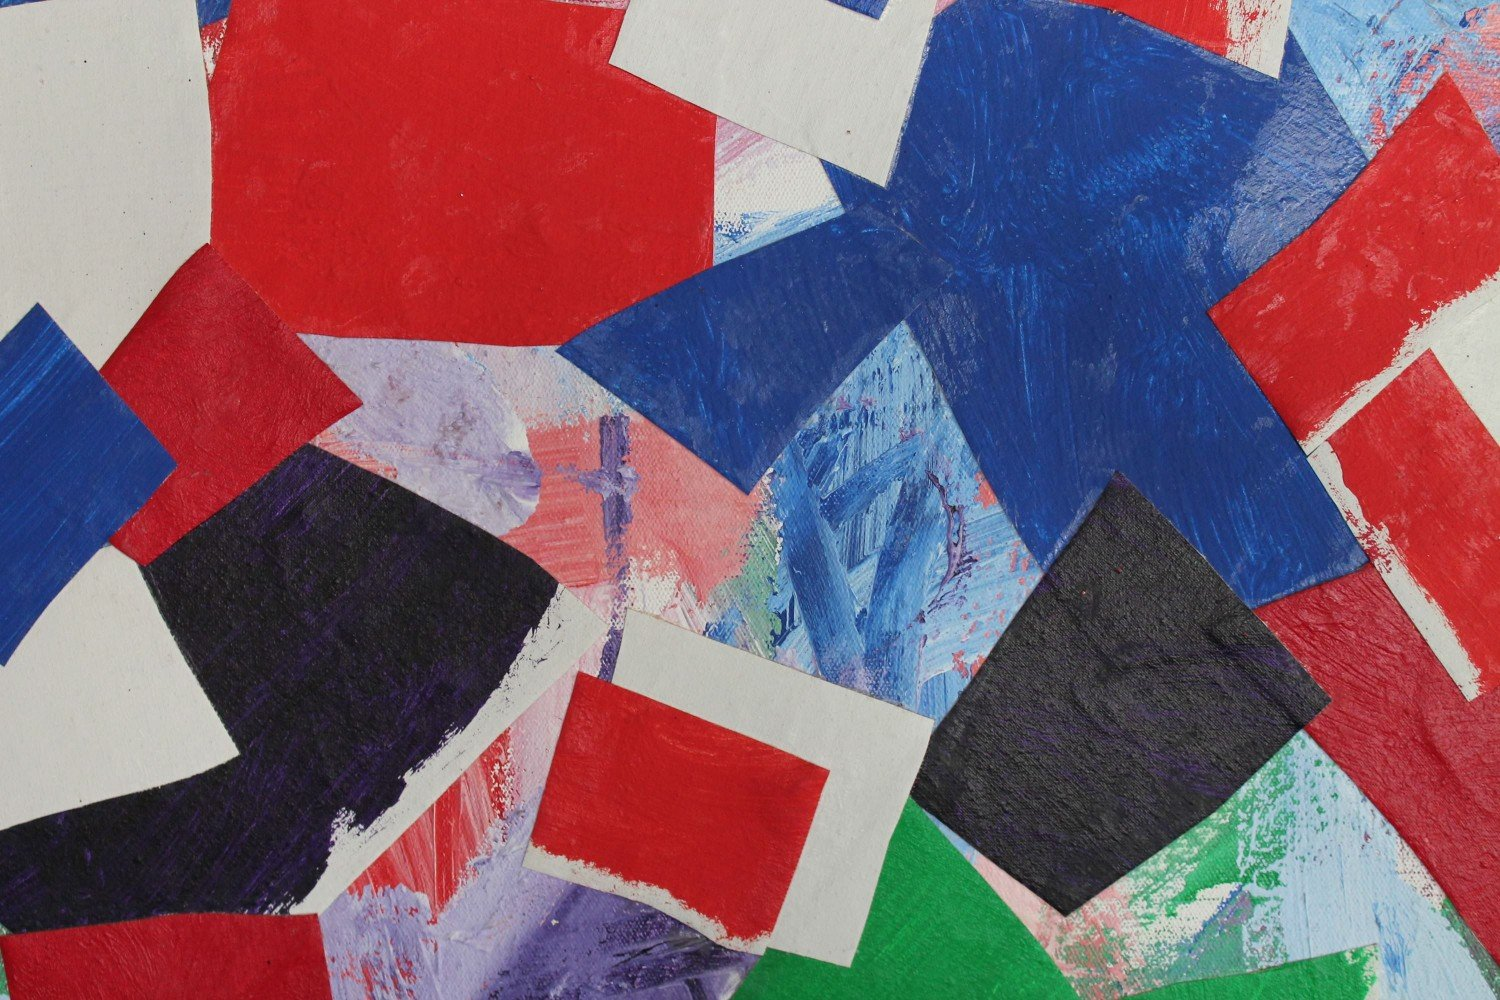 Abstract Acrylic on Canvas Collage Painting: